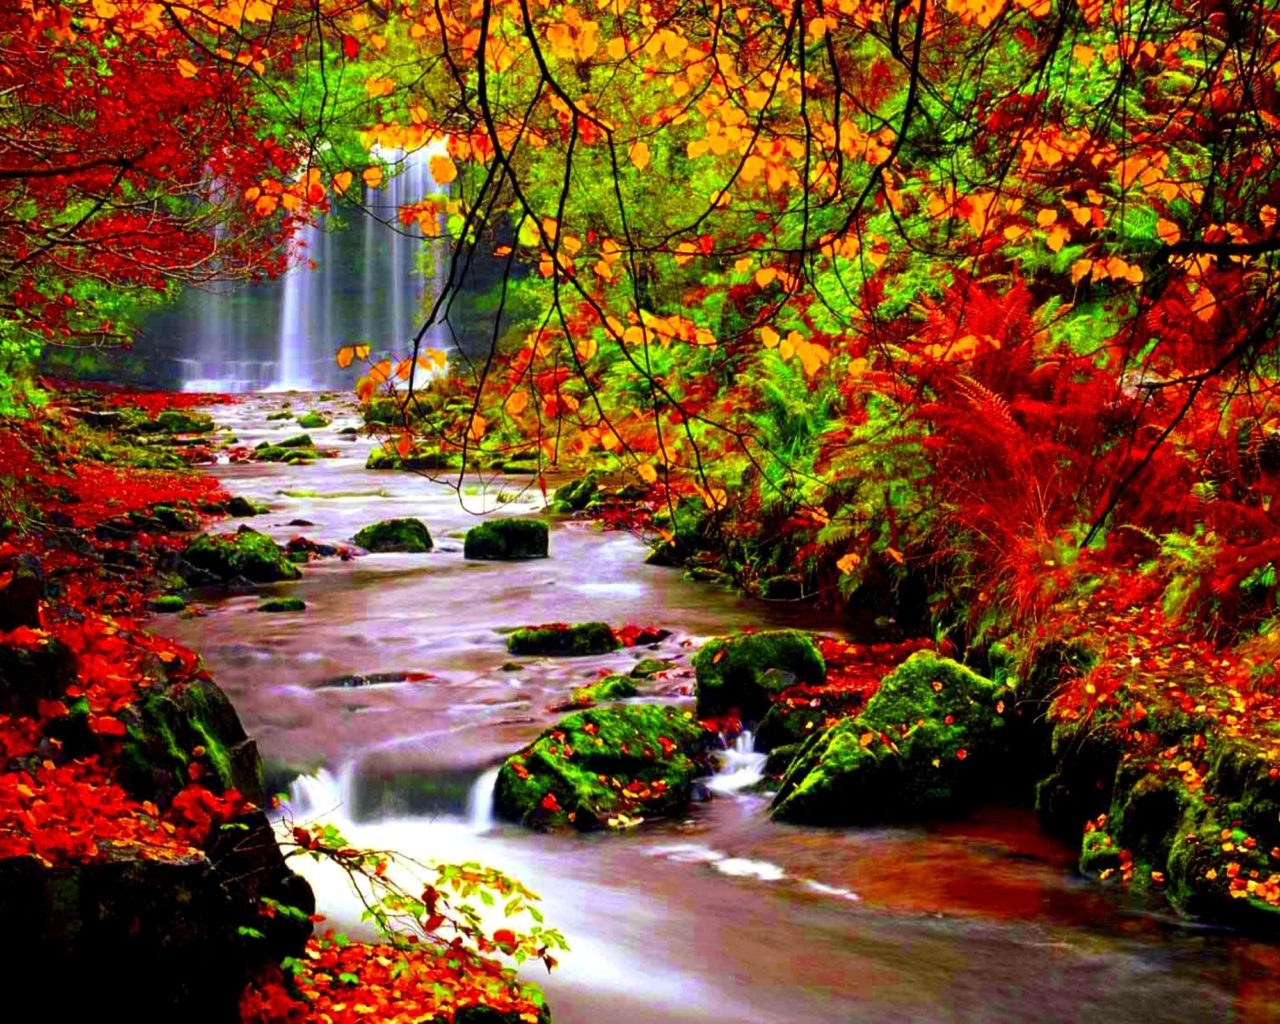 Fall 2016 Wallpaper Autumn Scenery Stream River In Autumn Trees With Red